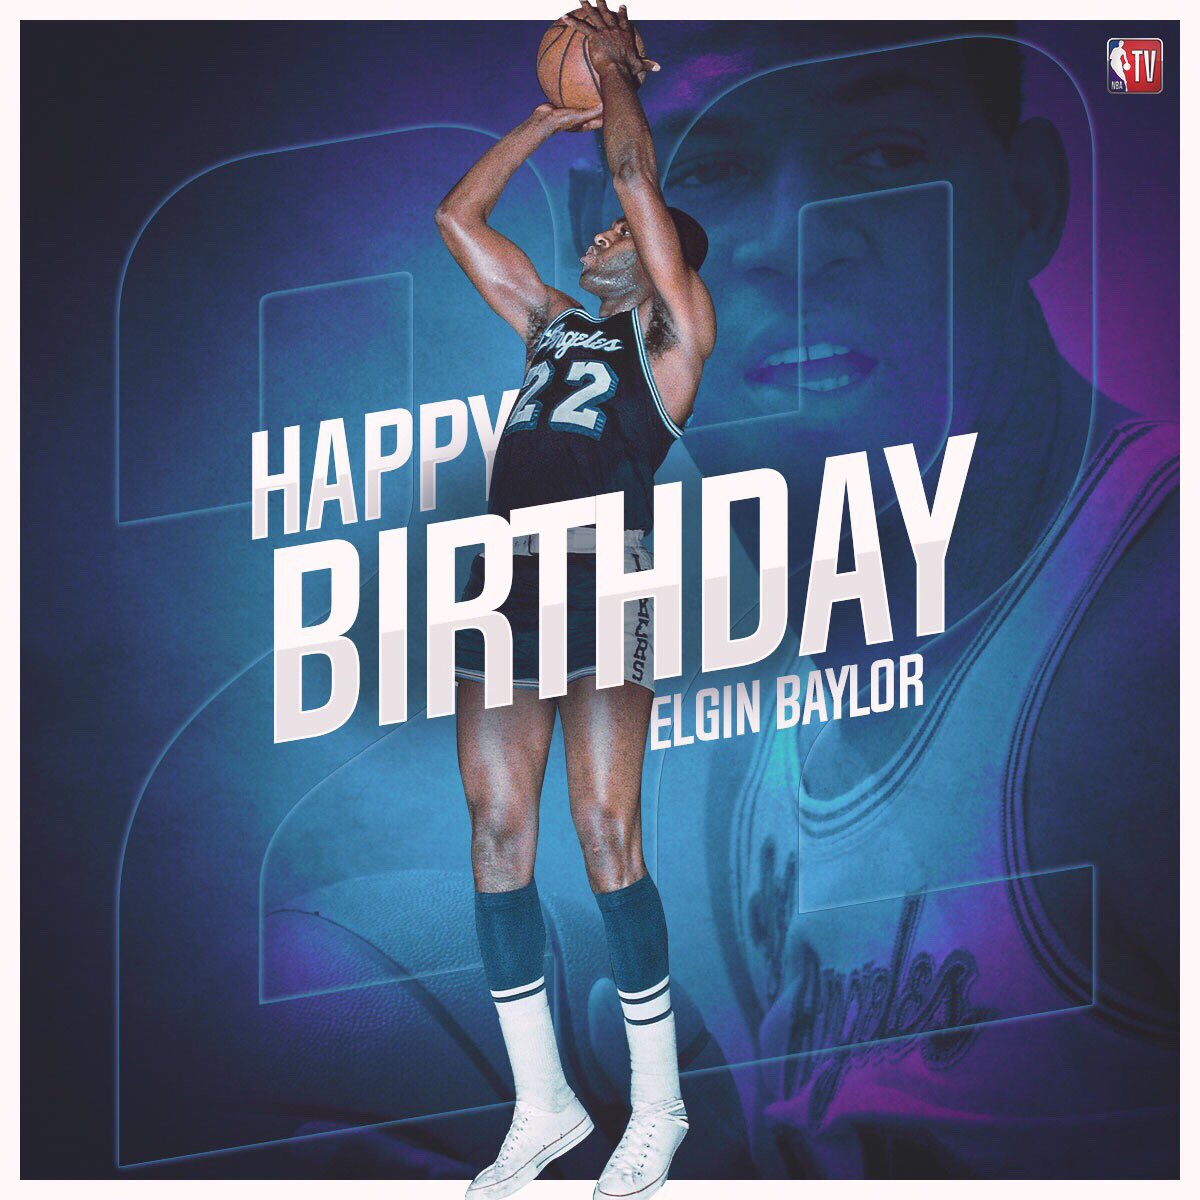 Join us in wishing Hall of Famer and legend, Elgin Baylor, a Happy Birthday!